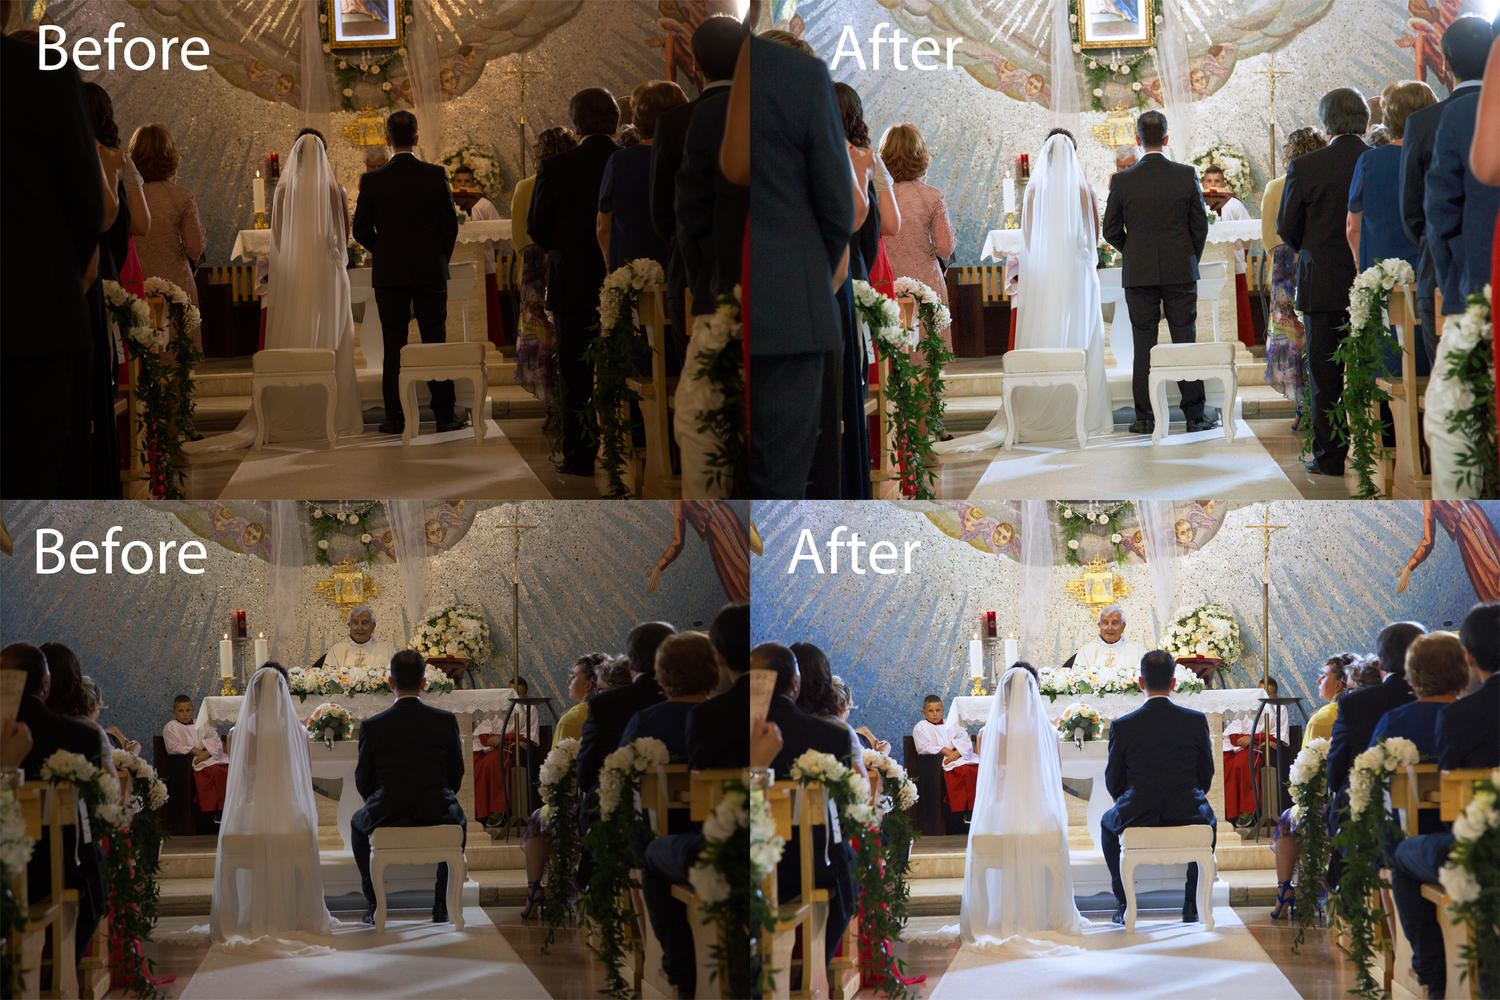 High End Photo Retouch & Color correction for 4 Images by kushal_chaudhari - 110614